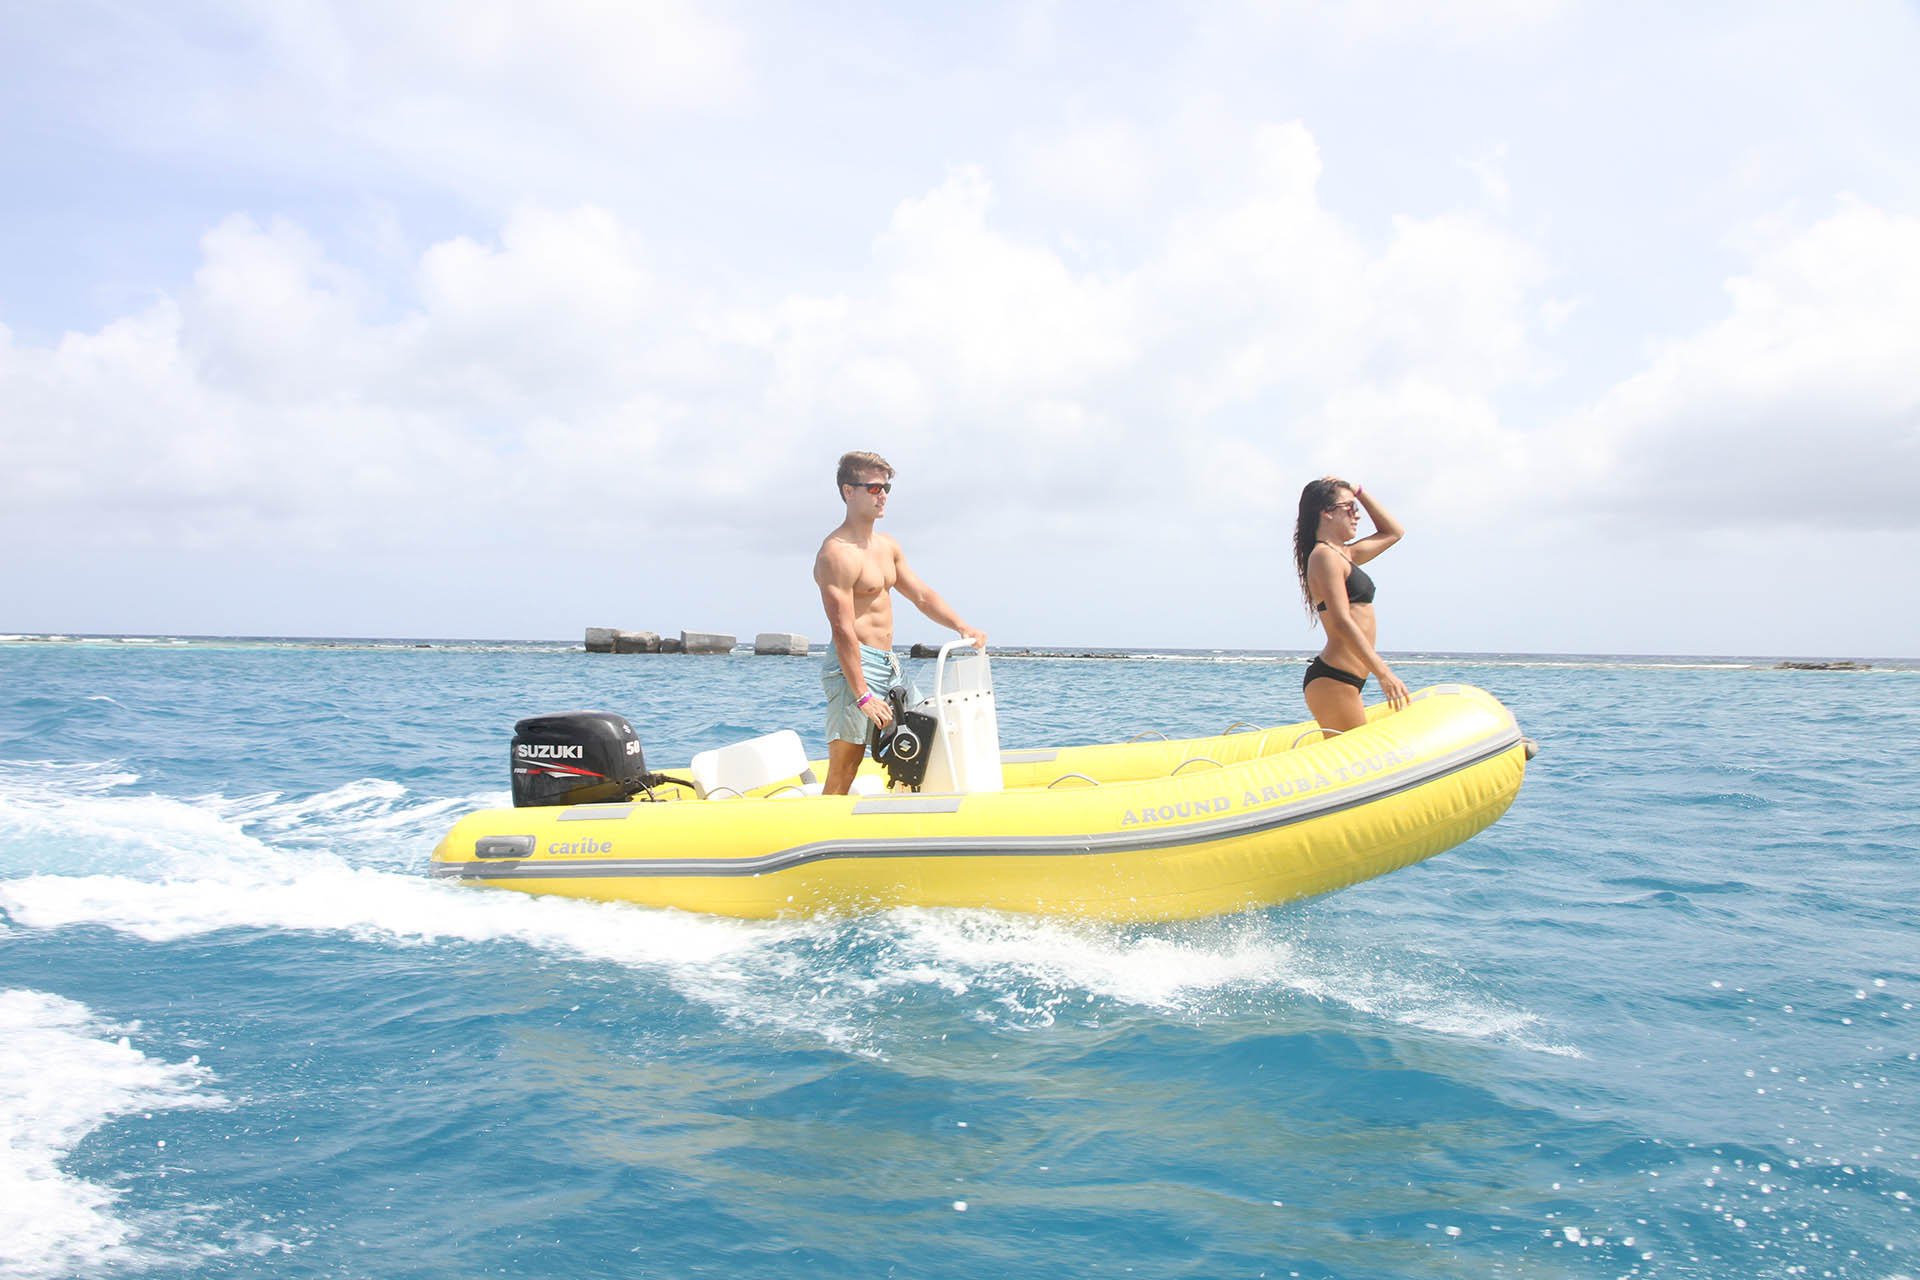 Aruba Mini Boat Tour